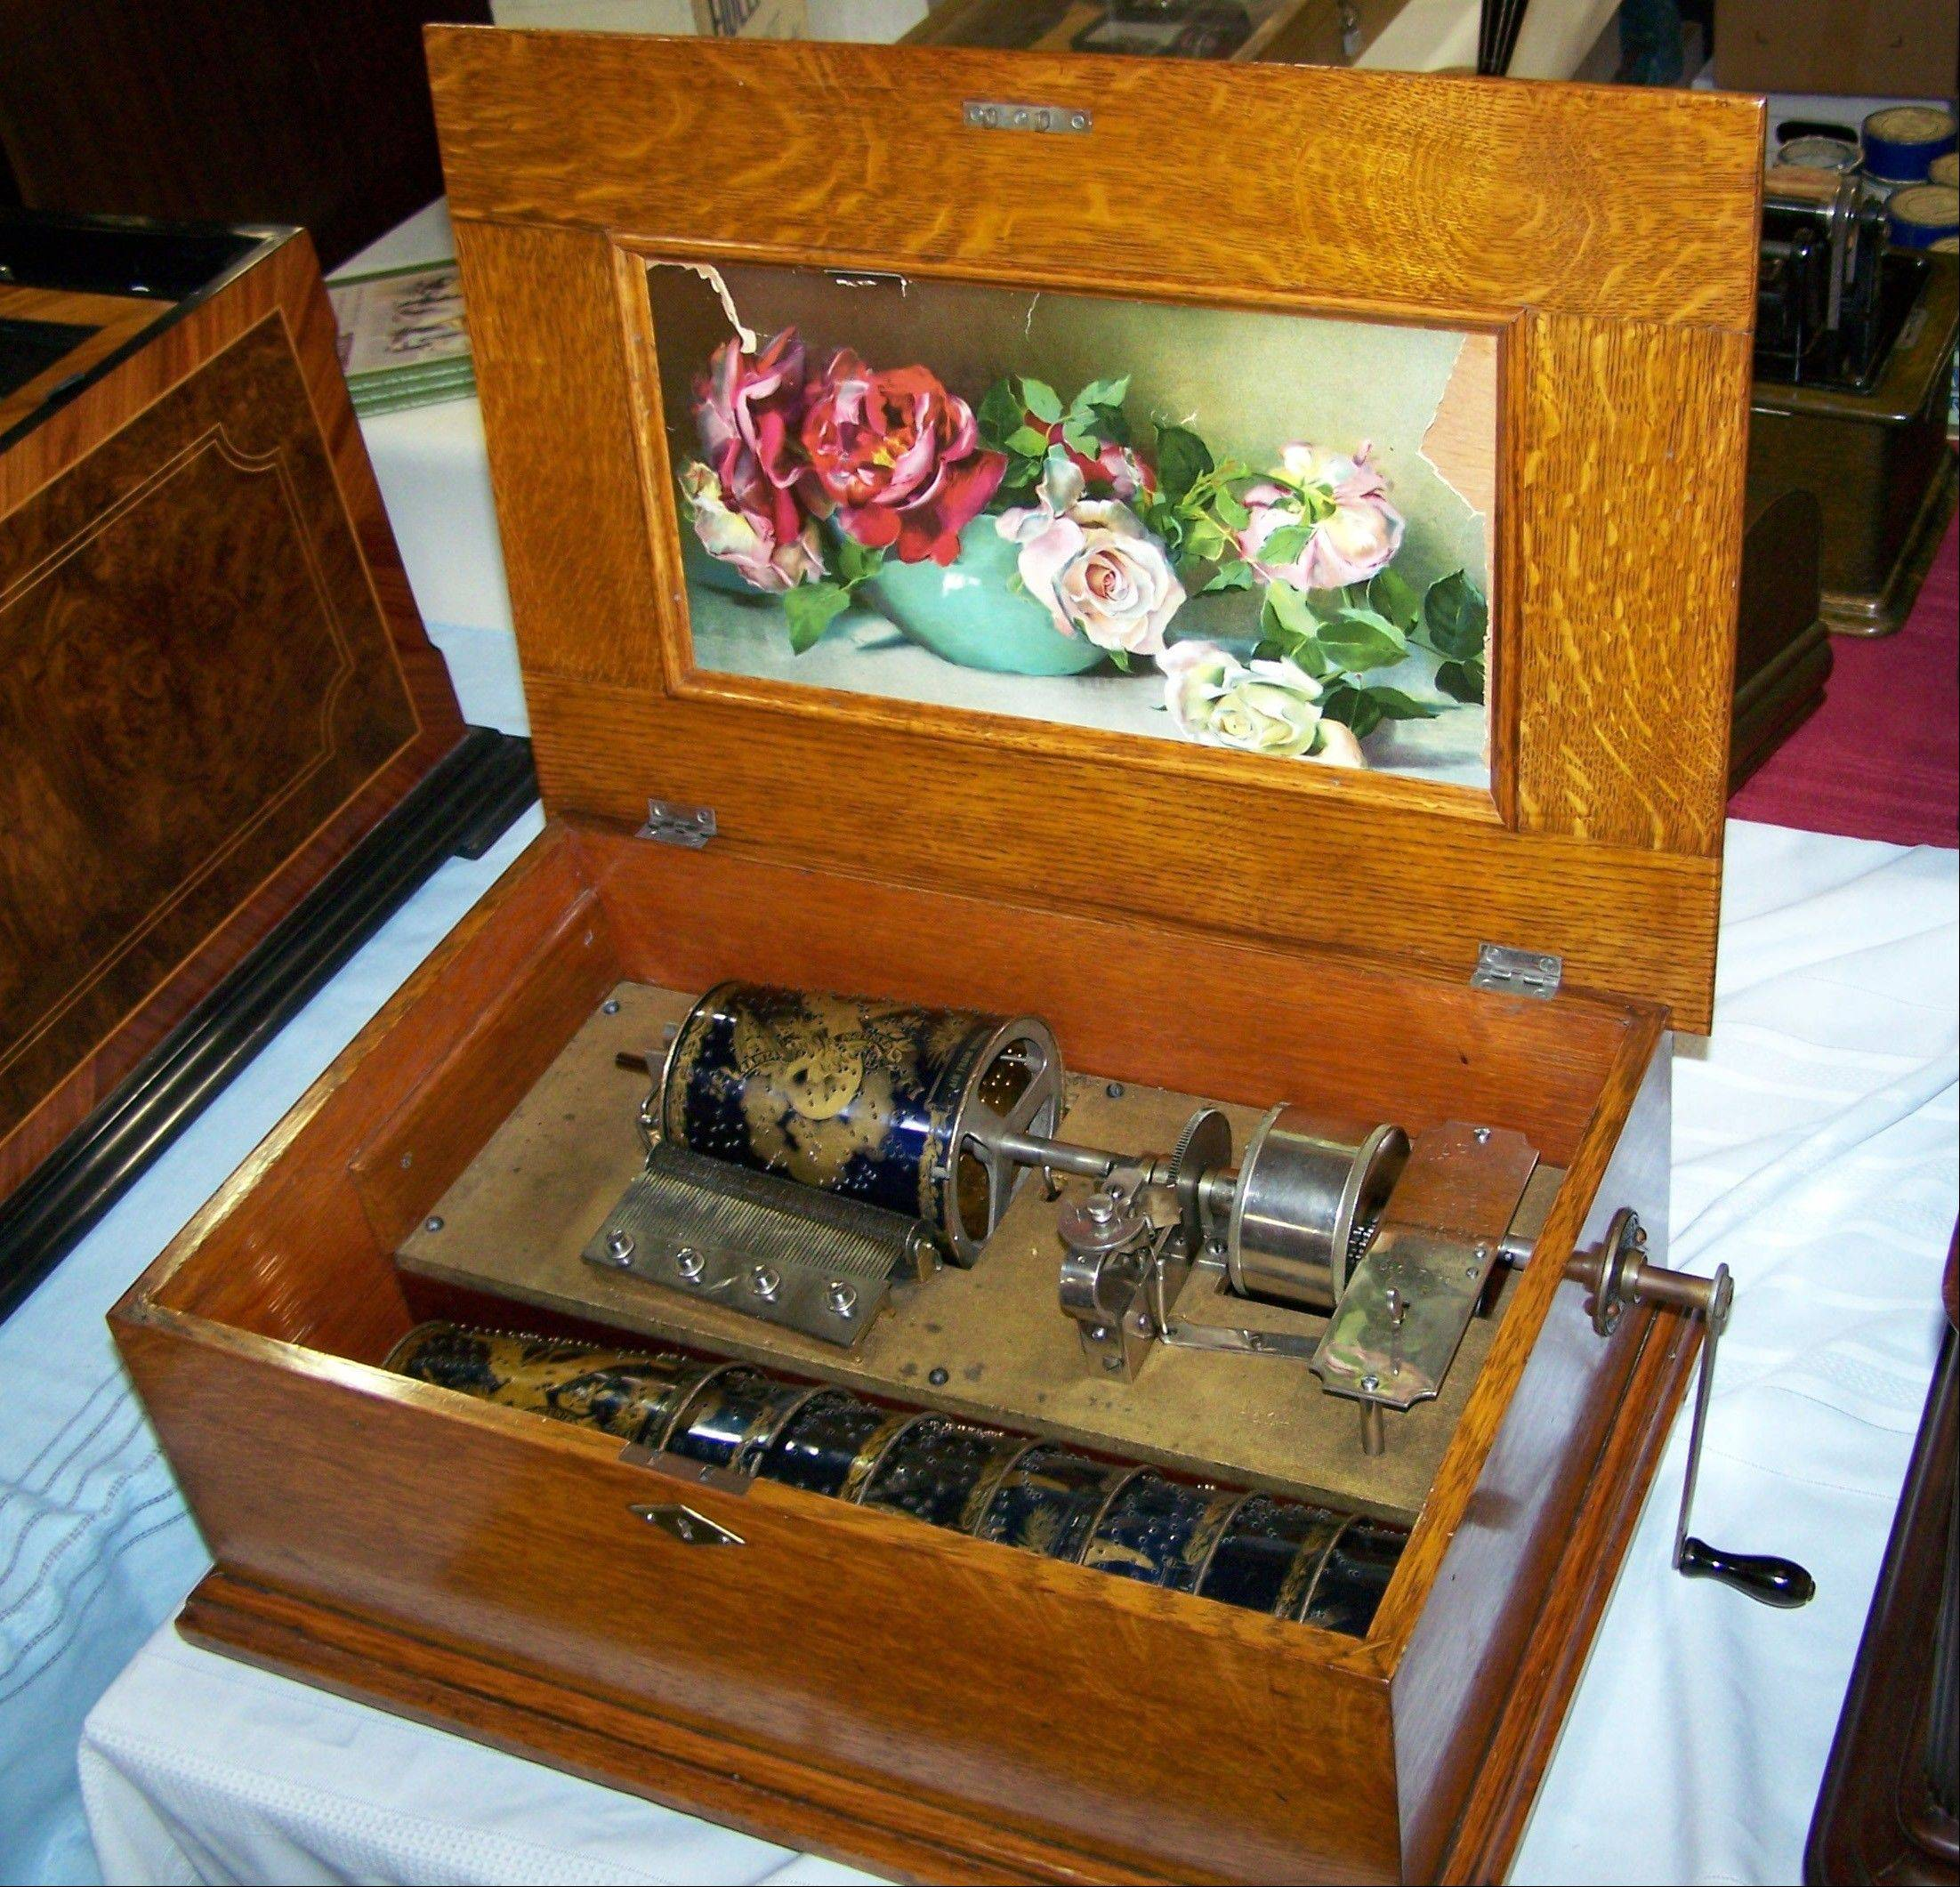 The 38th Annual Phonograph and Music Box Show, with hundreds of antique photographs, music boxes and radios, is coming to Donley's Wild West Town in Union, Ill.